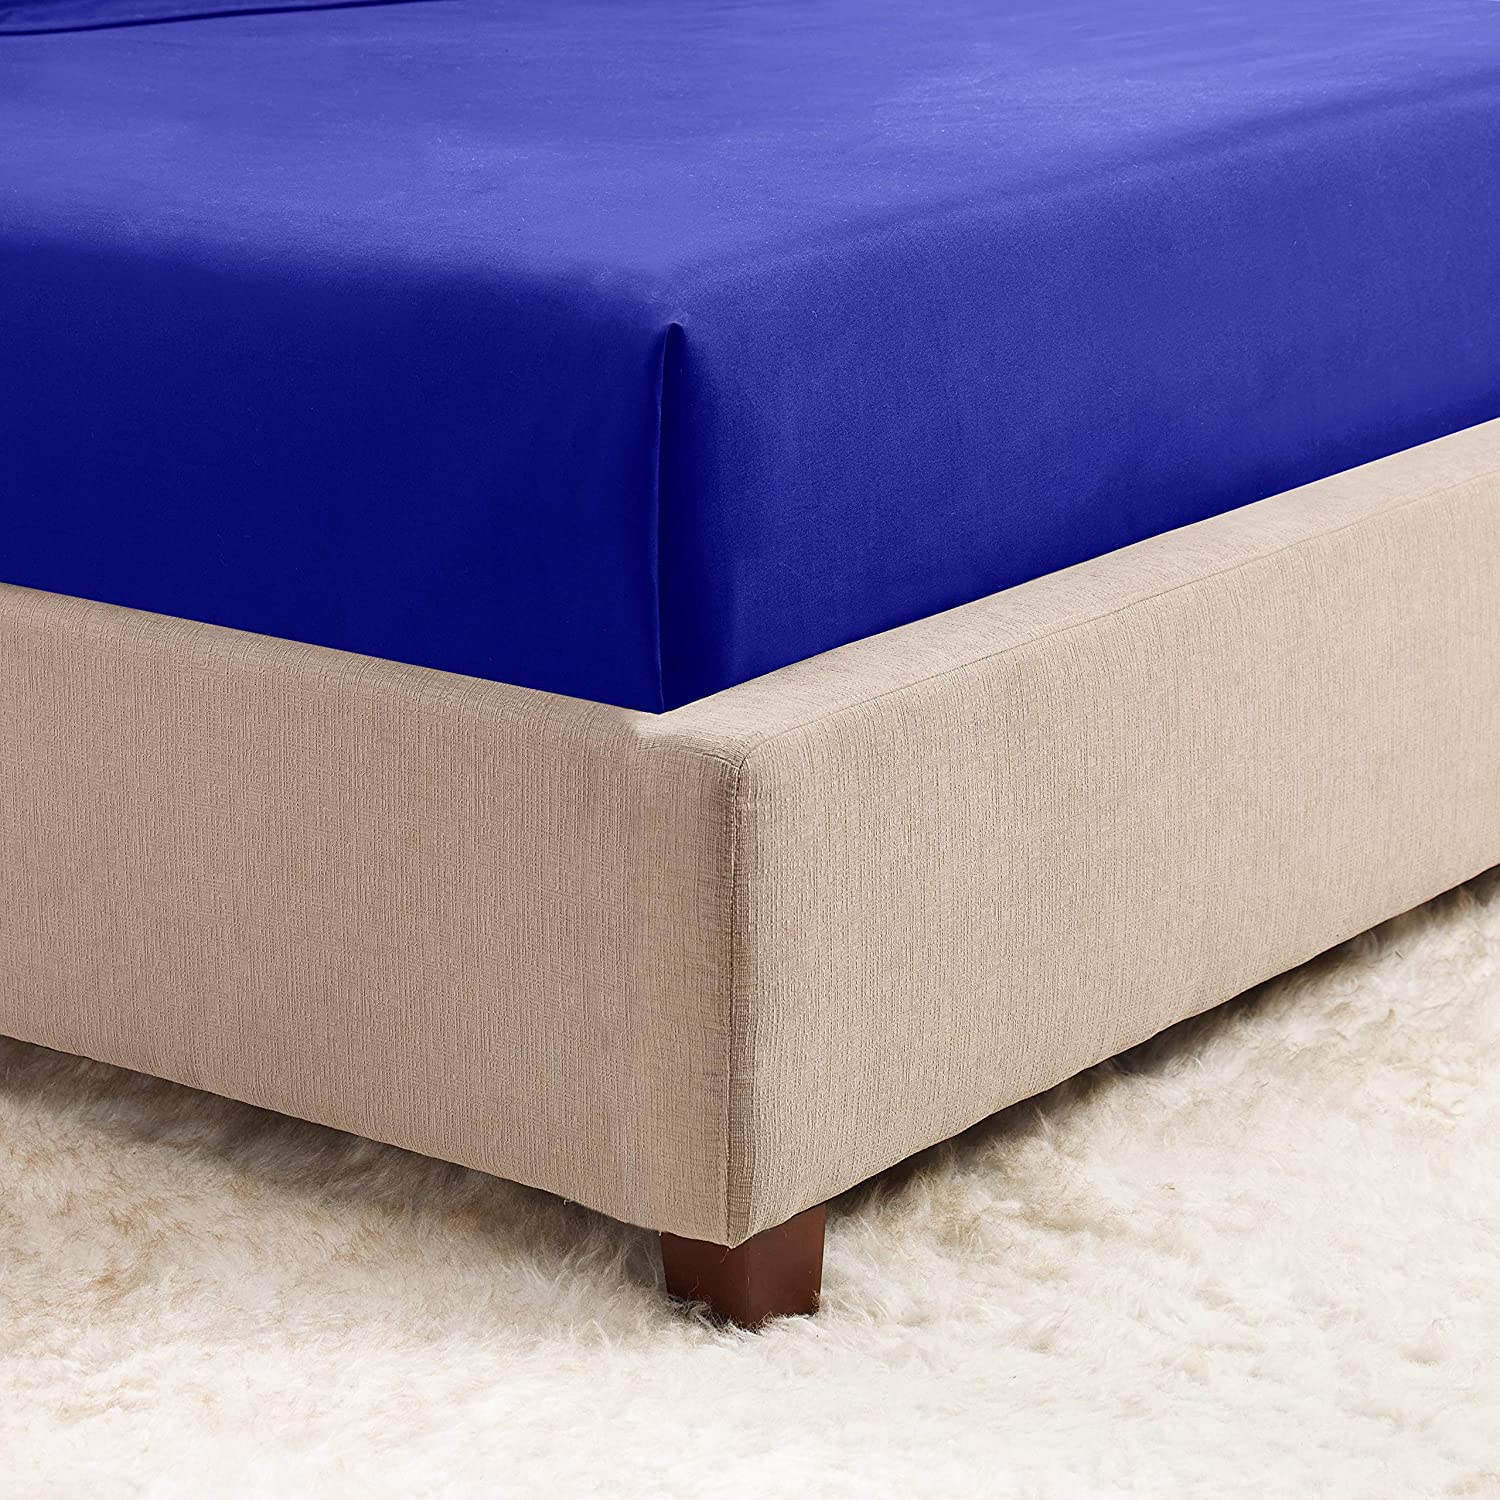 Twin XL Hotel Luxury Silky Soft Double Brushed Microfiber Sheet Hypoallergenic Wrinkle Free Cooling Deep Pocket Bed Sheet Royal Blue Empyrean Bedding Deep Pocket Fitted Sheet